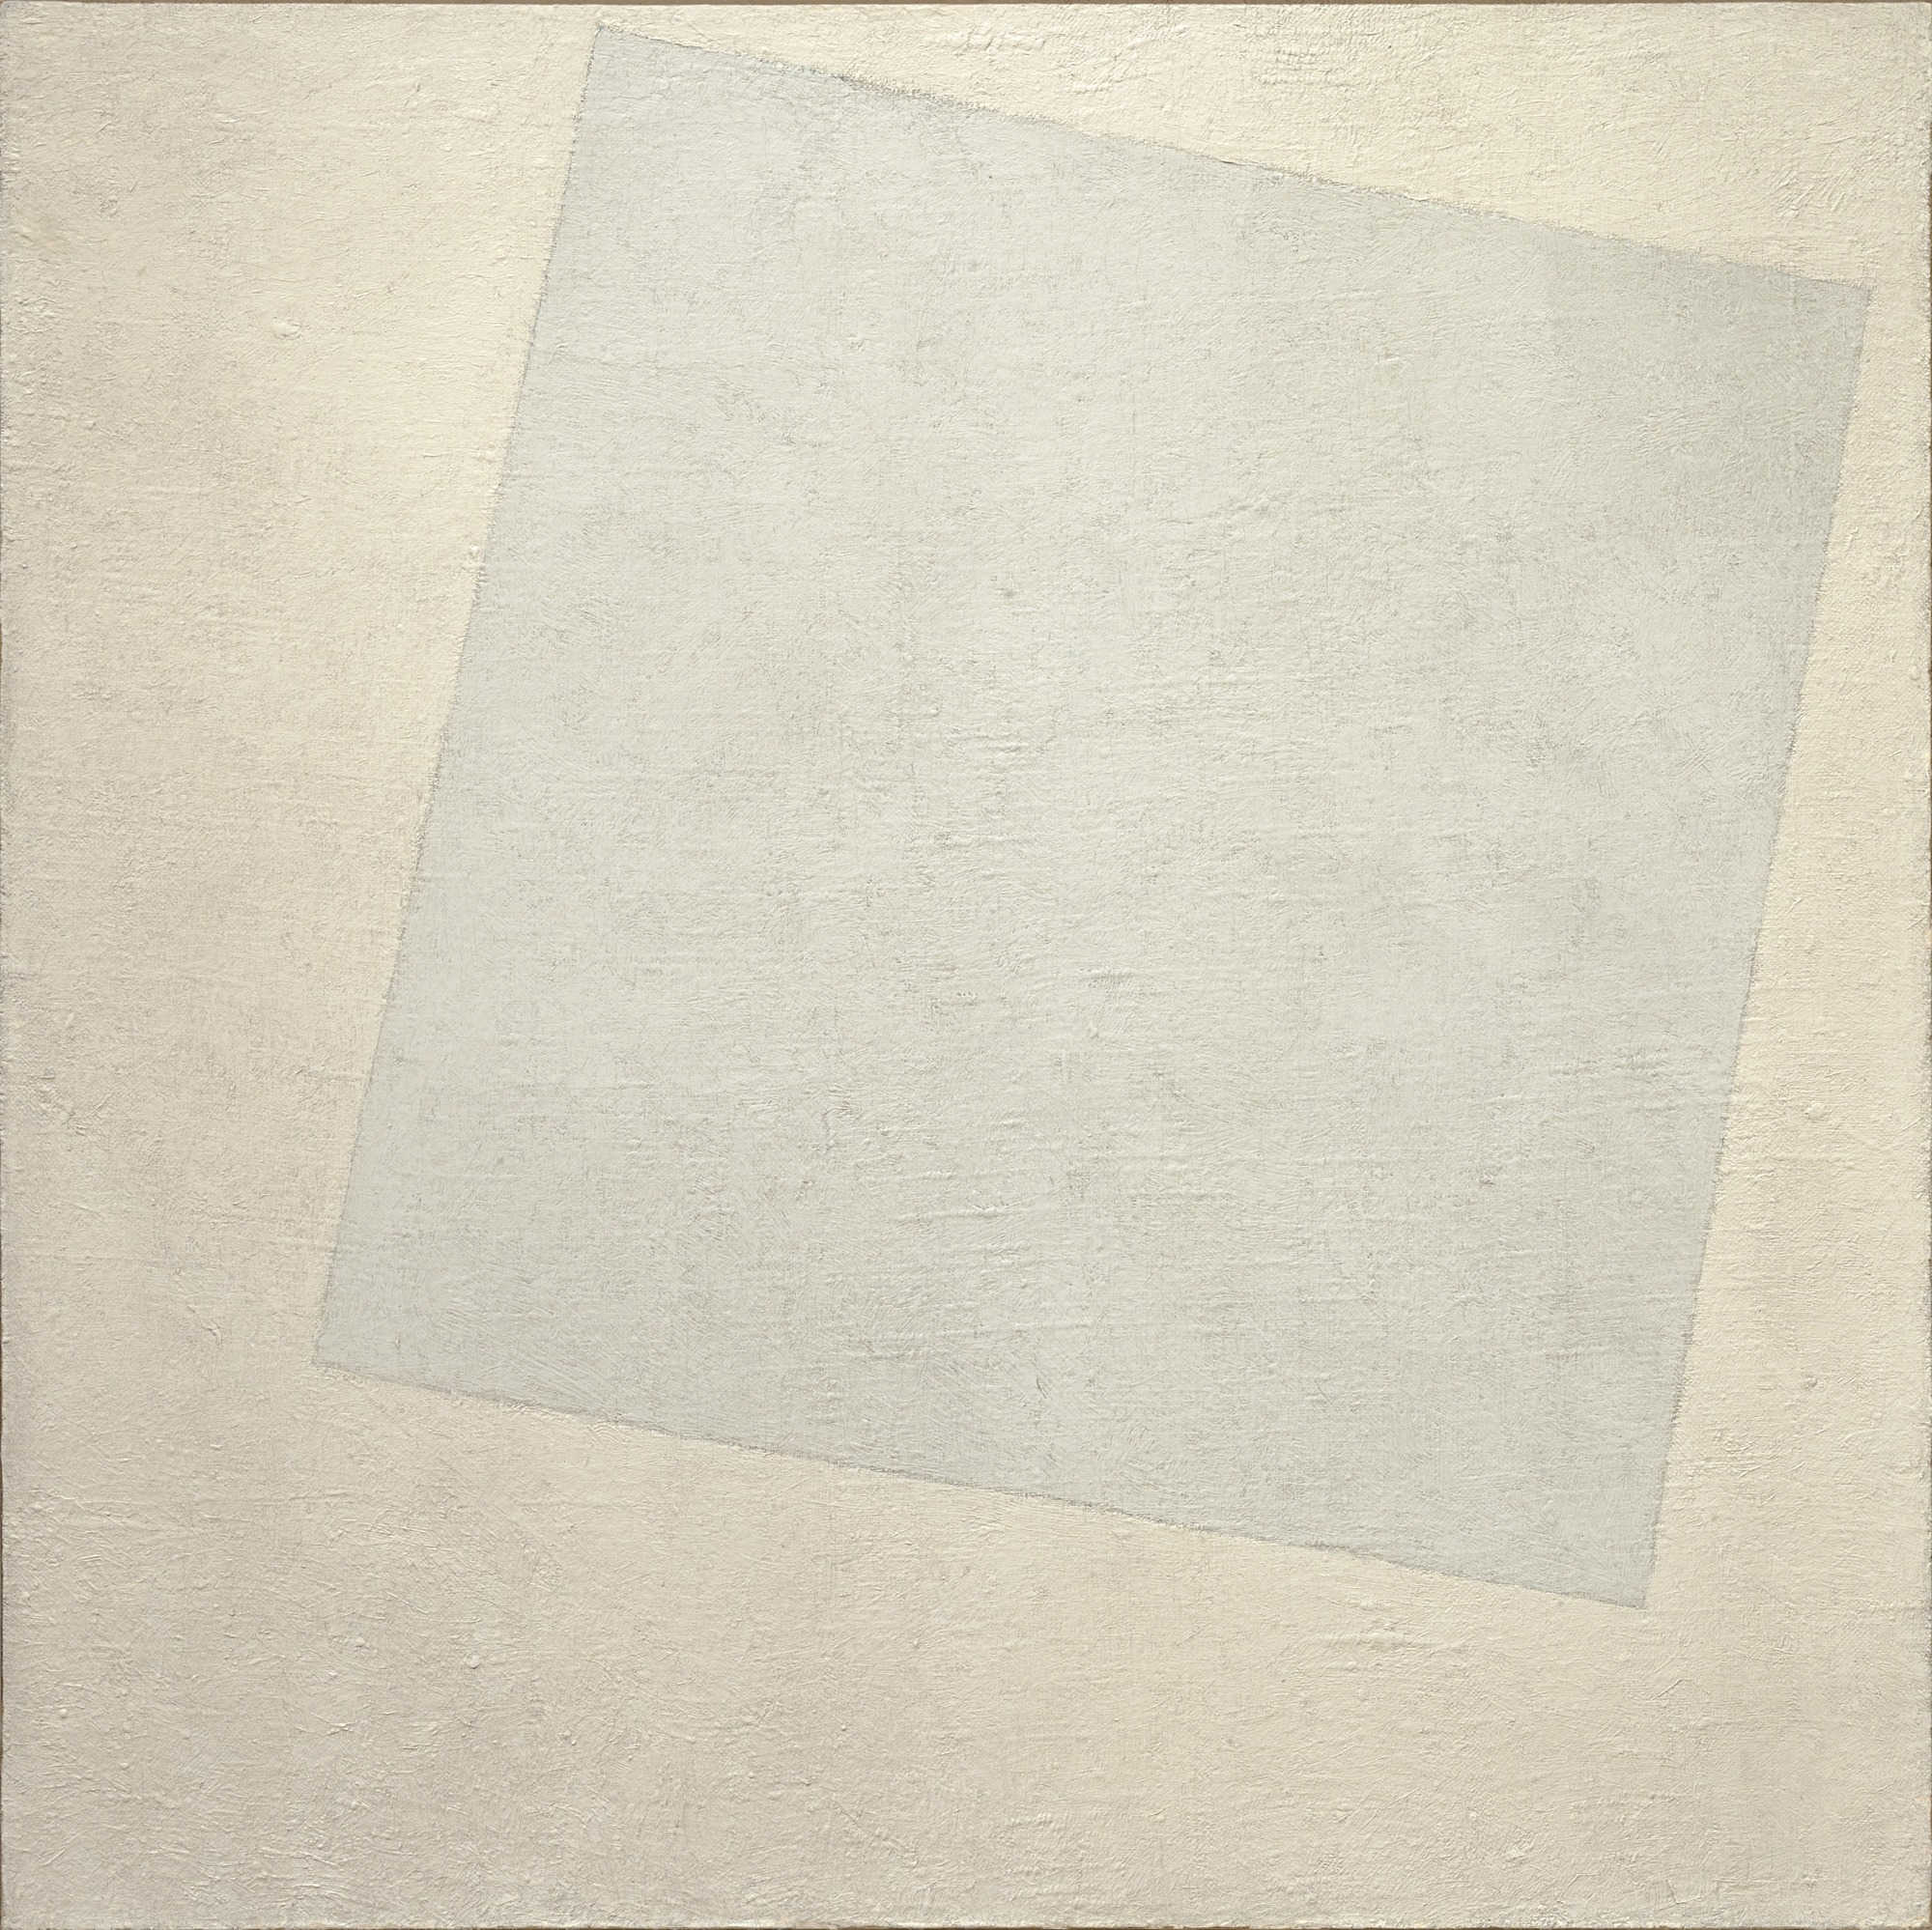 Hey, it's one of those white paintings!